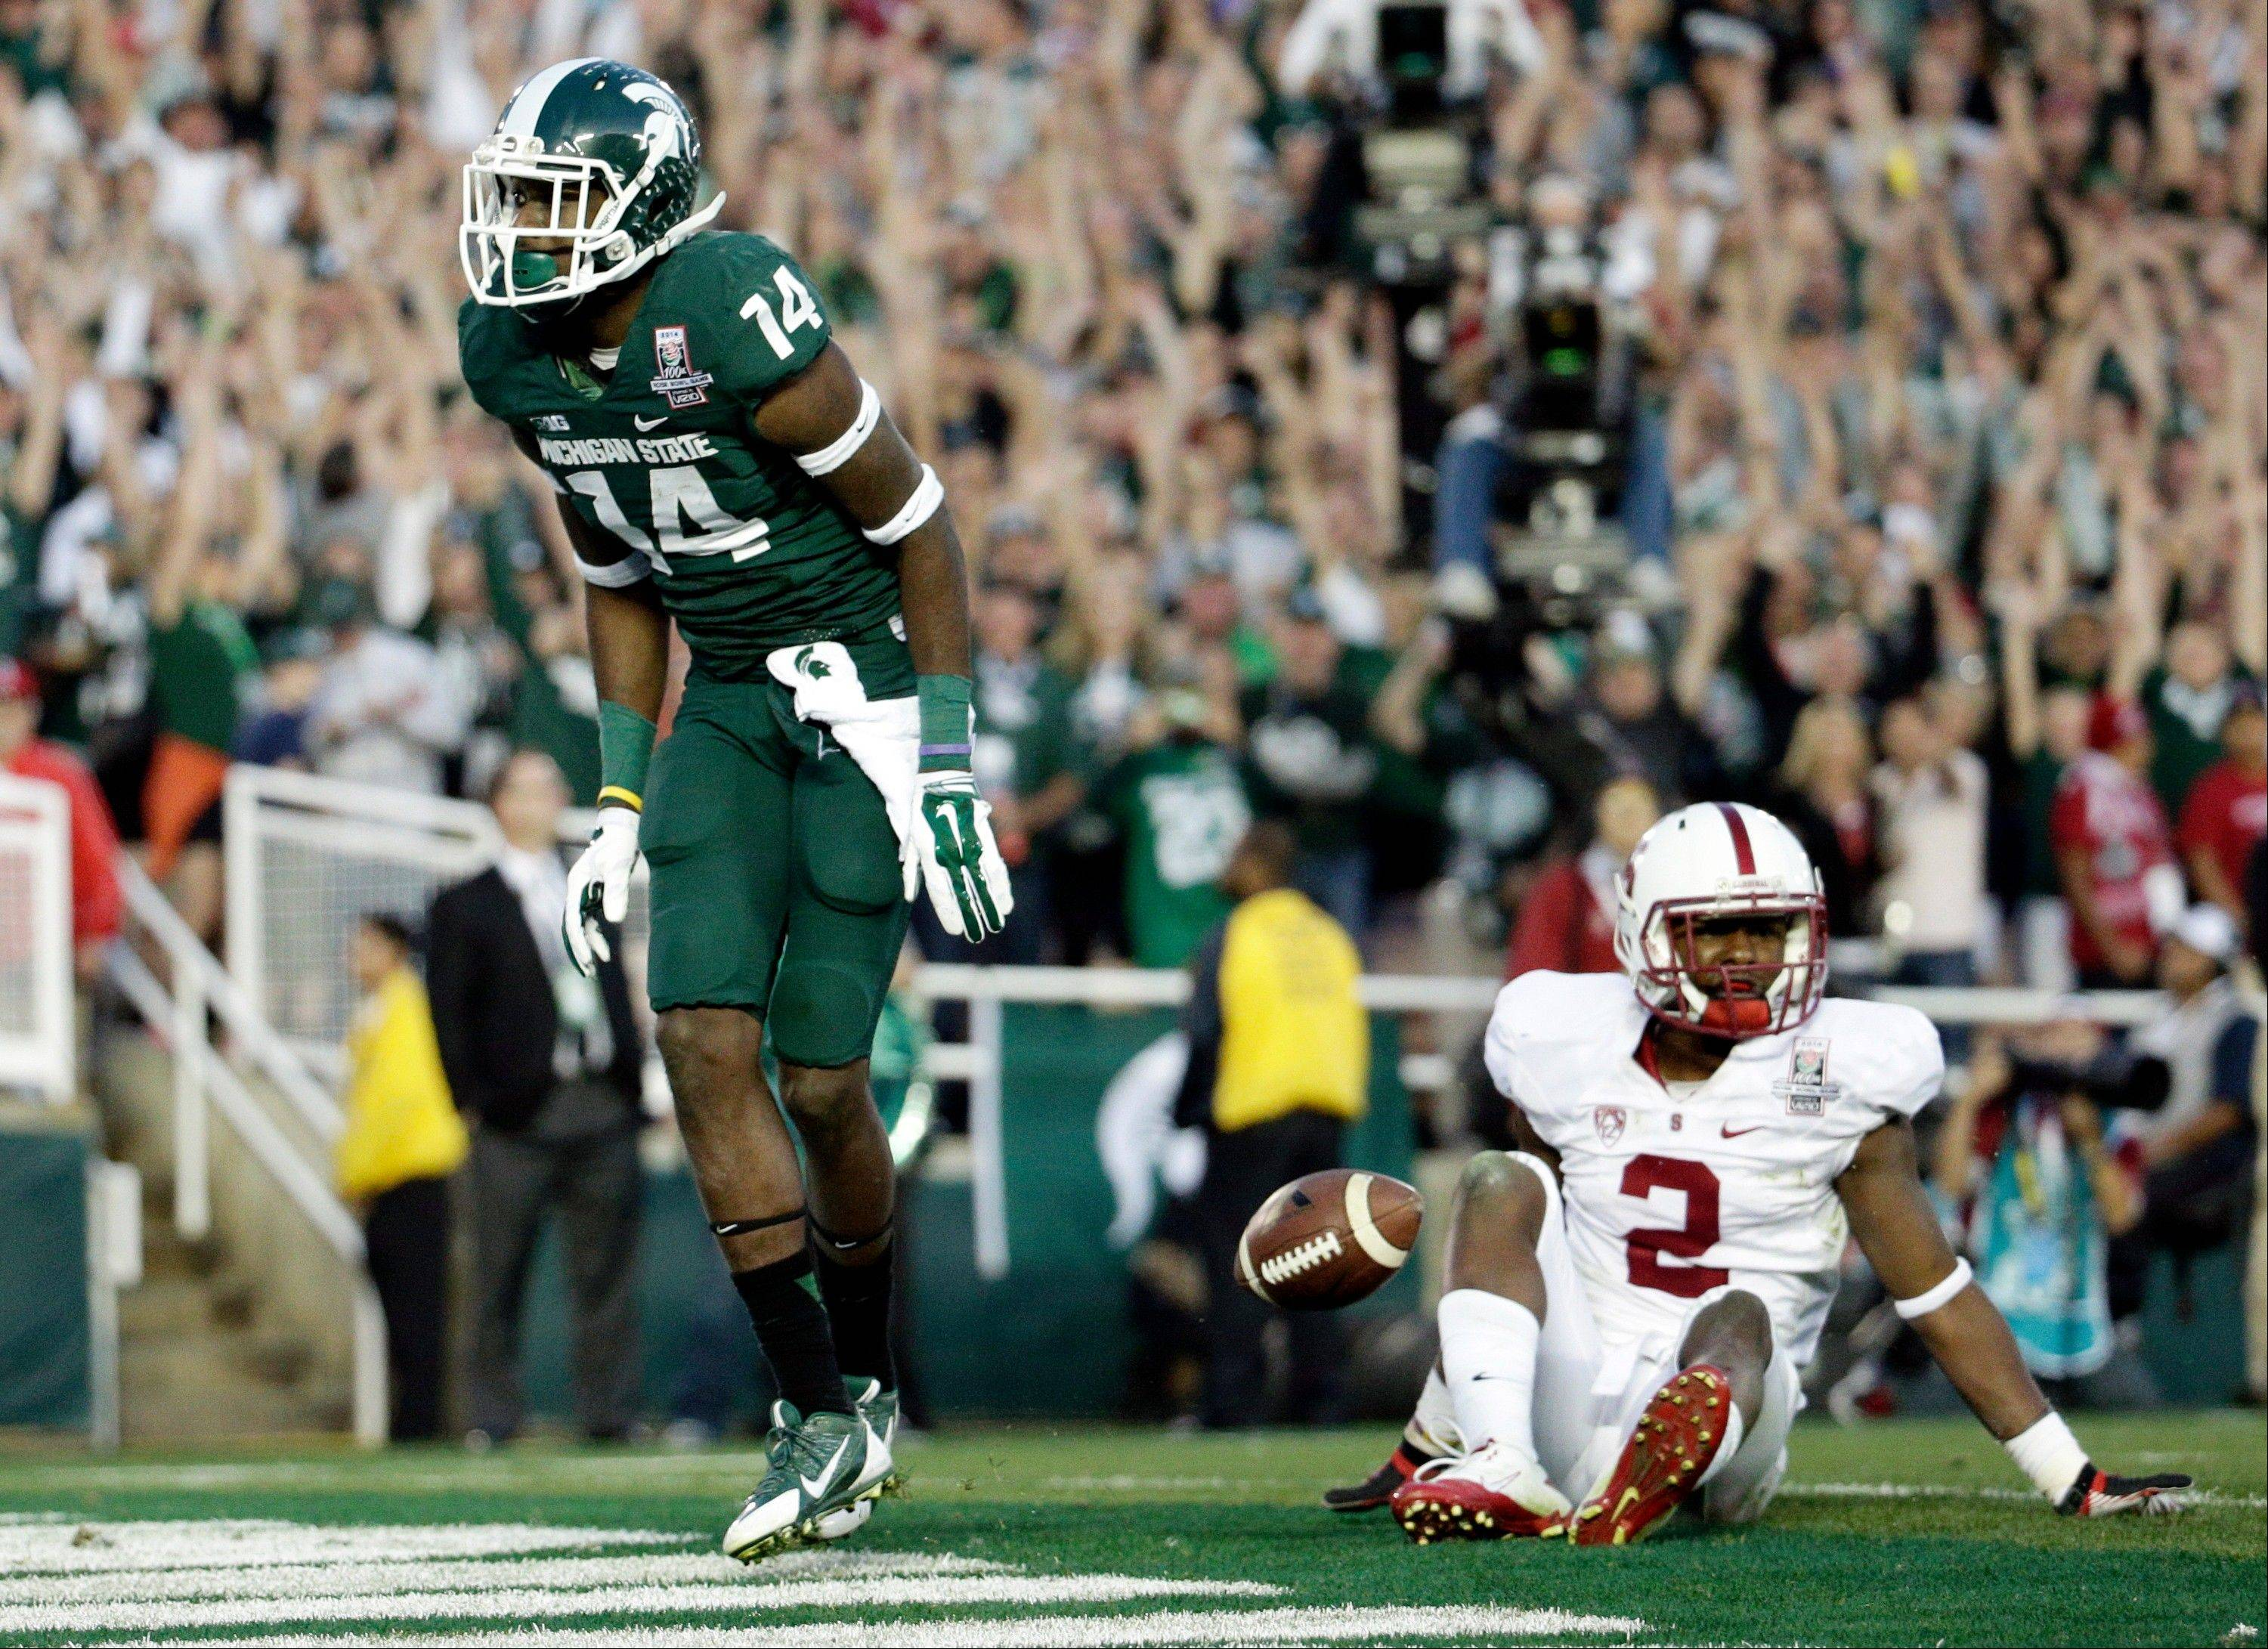 Michigan State wide receiver Tony Lippett celebrates his touchdown past Stanford cornerback Wayne Lyons, during the second half of the Rose Bowl NCAA college football game on Wednesday, Jan. 1, 2014, in Pasadena, Calif.